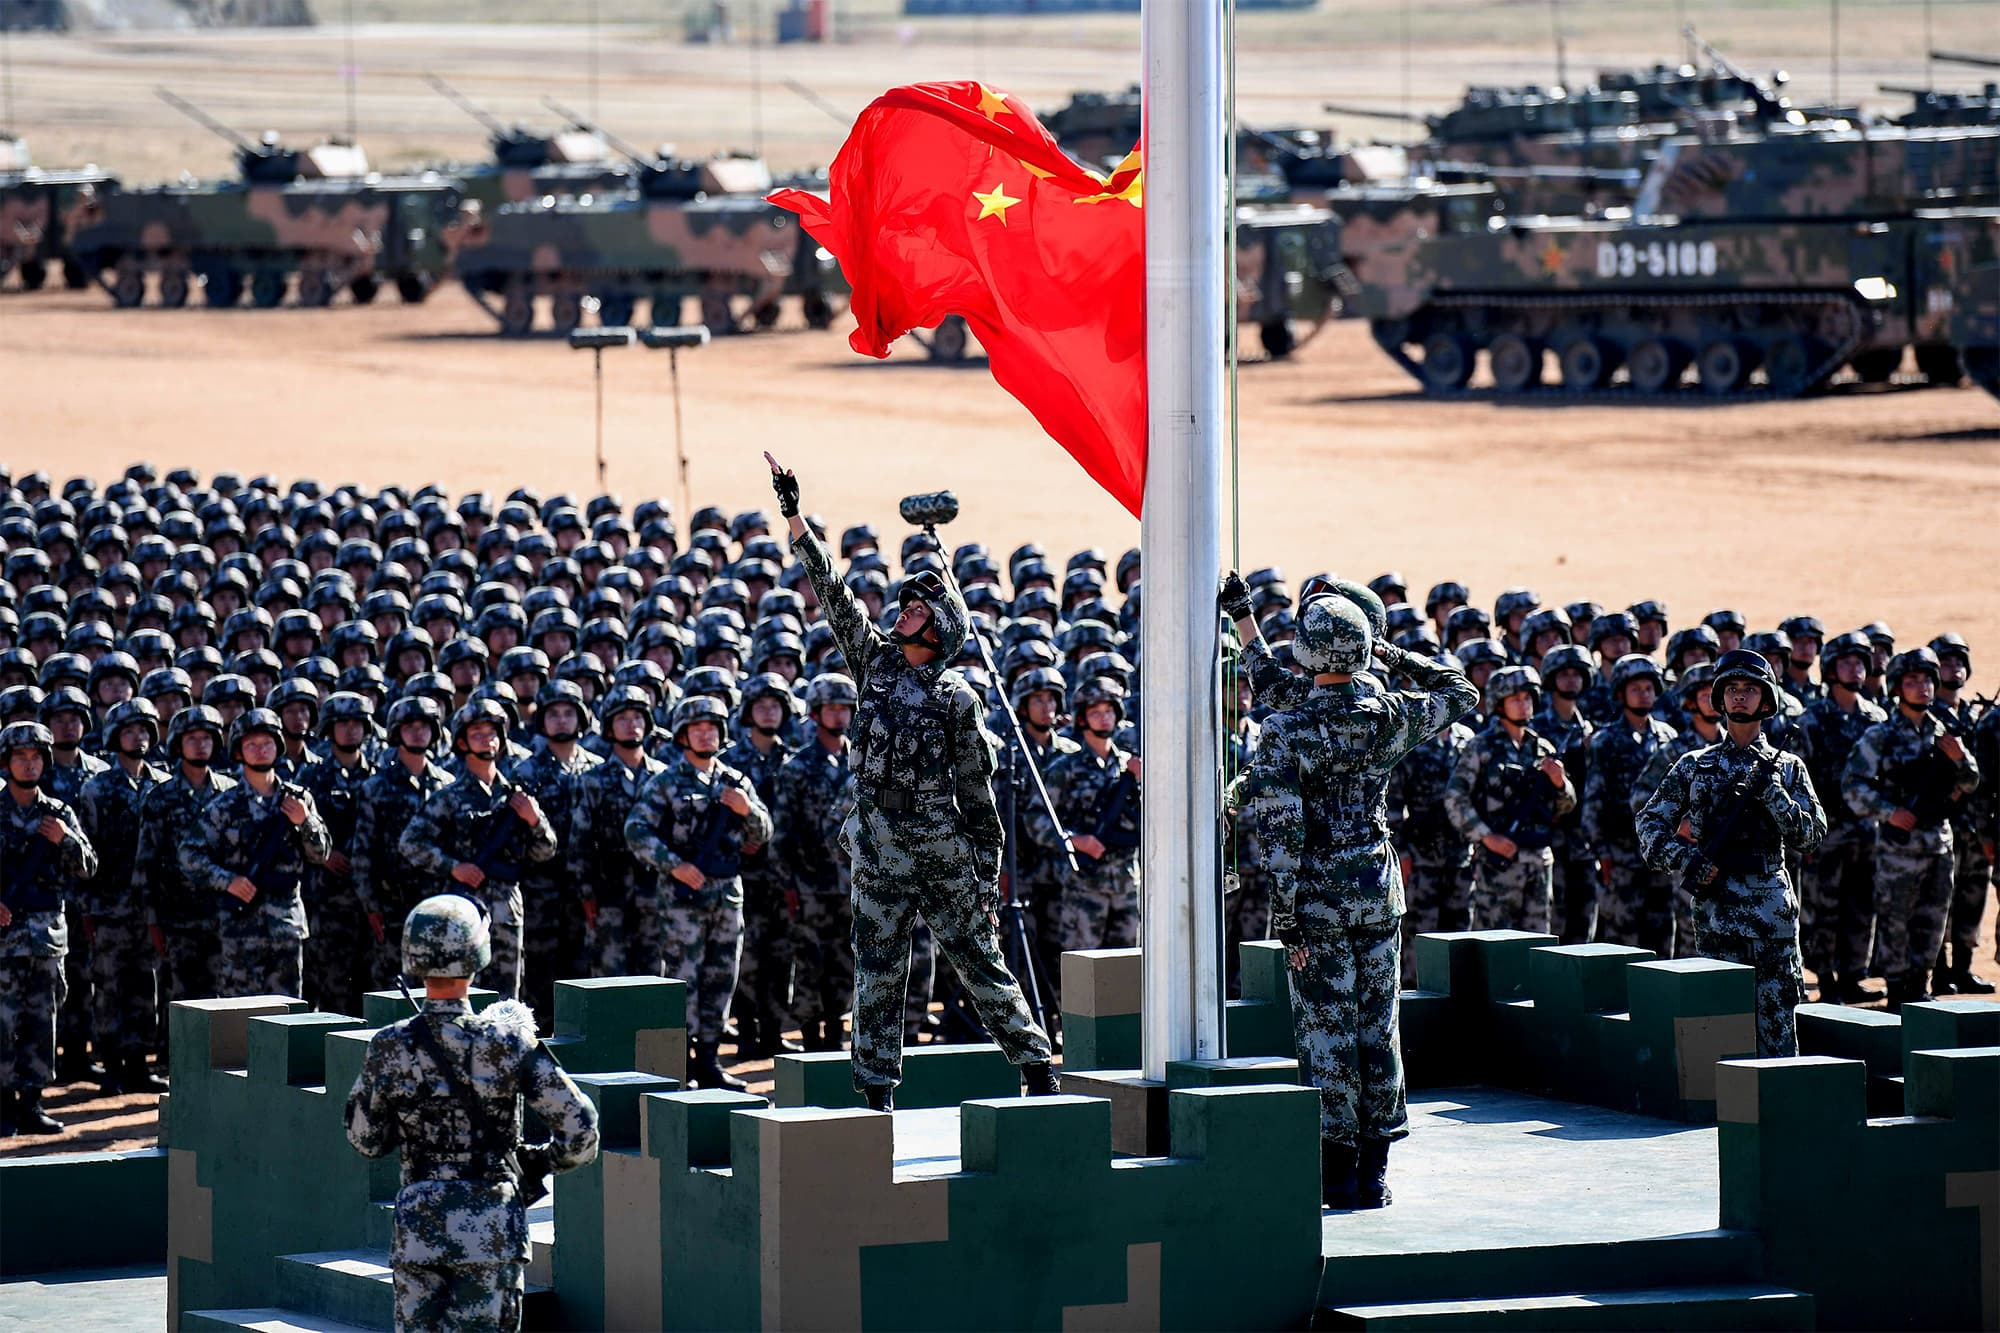 The Chinese flag is raised during a military parade at the Zhurihe training base in China's northern Inner Mongolia region on July 30, 2017. ─ AFP